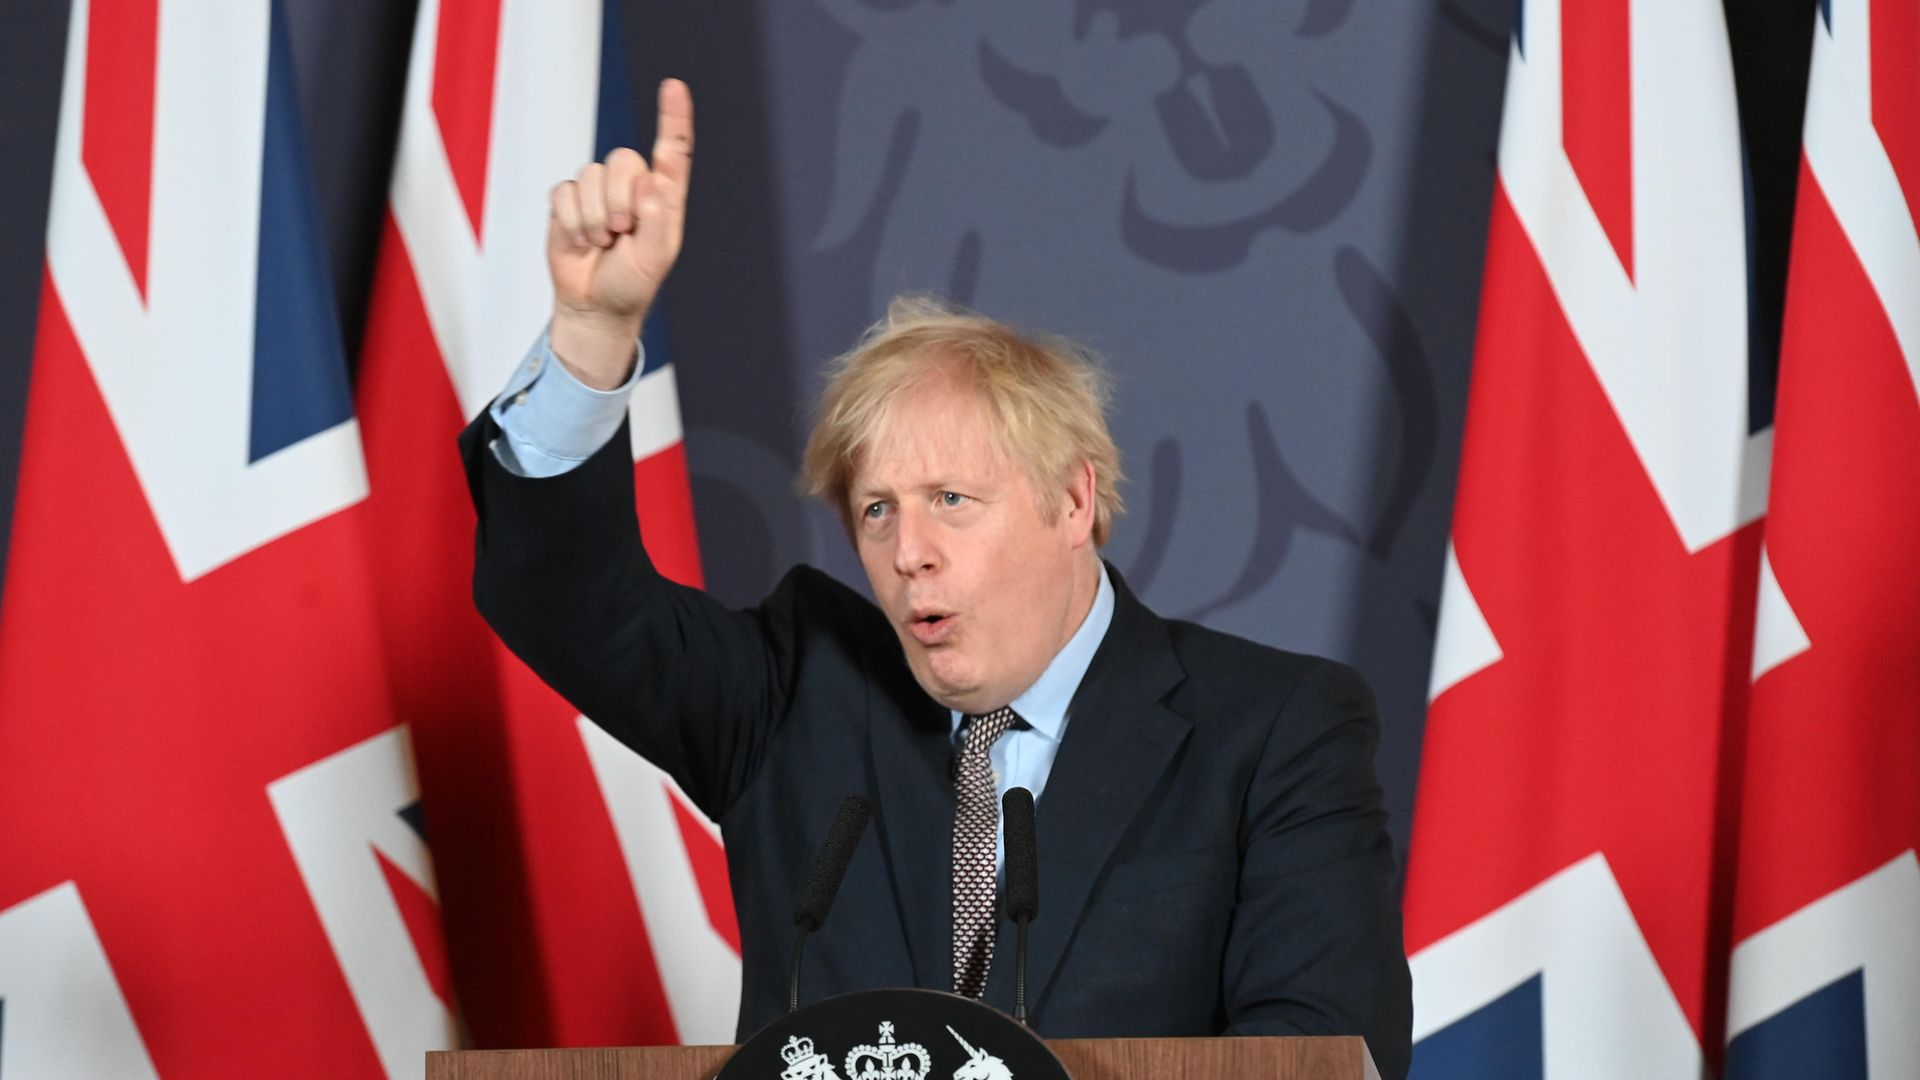 Prime Minister Boris Johnson during a media briefing in Downing Street, London, on the agreement of a post-Brexit trade deal. - Credit: PA